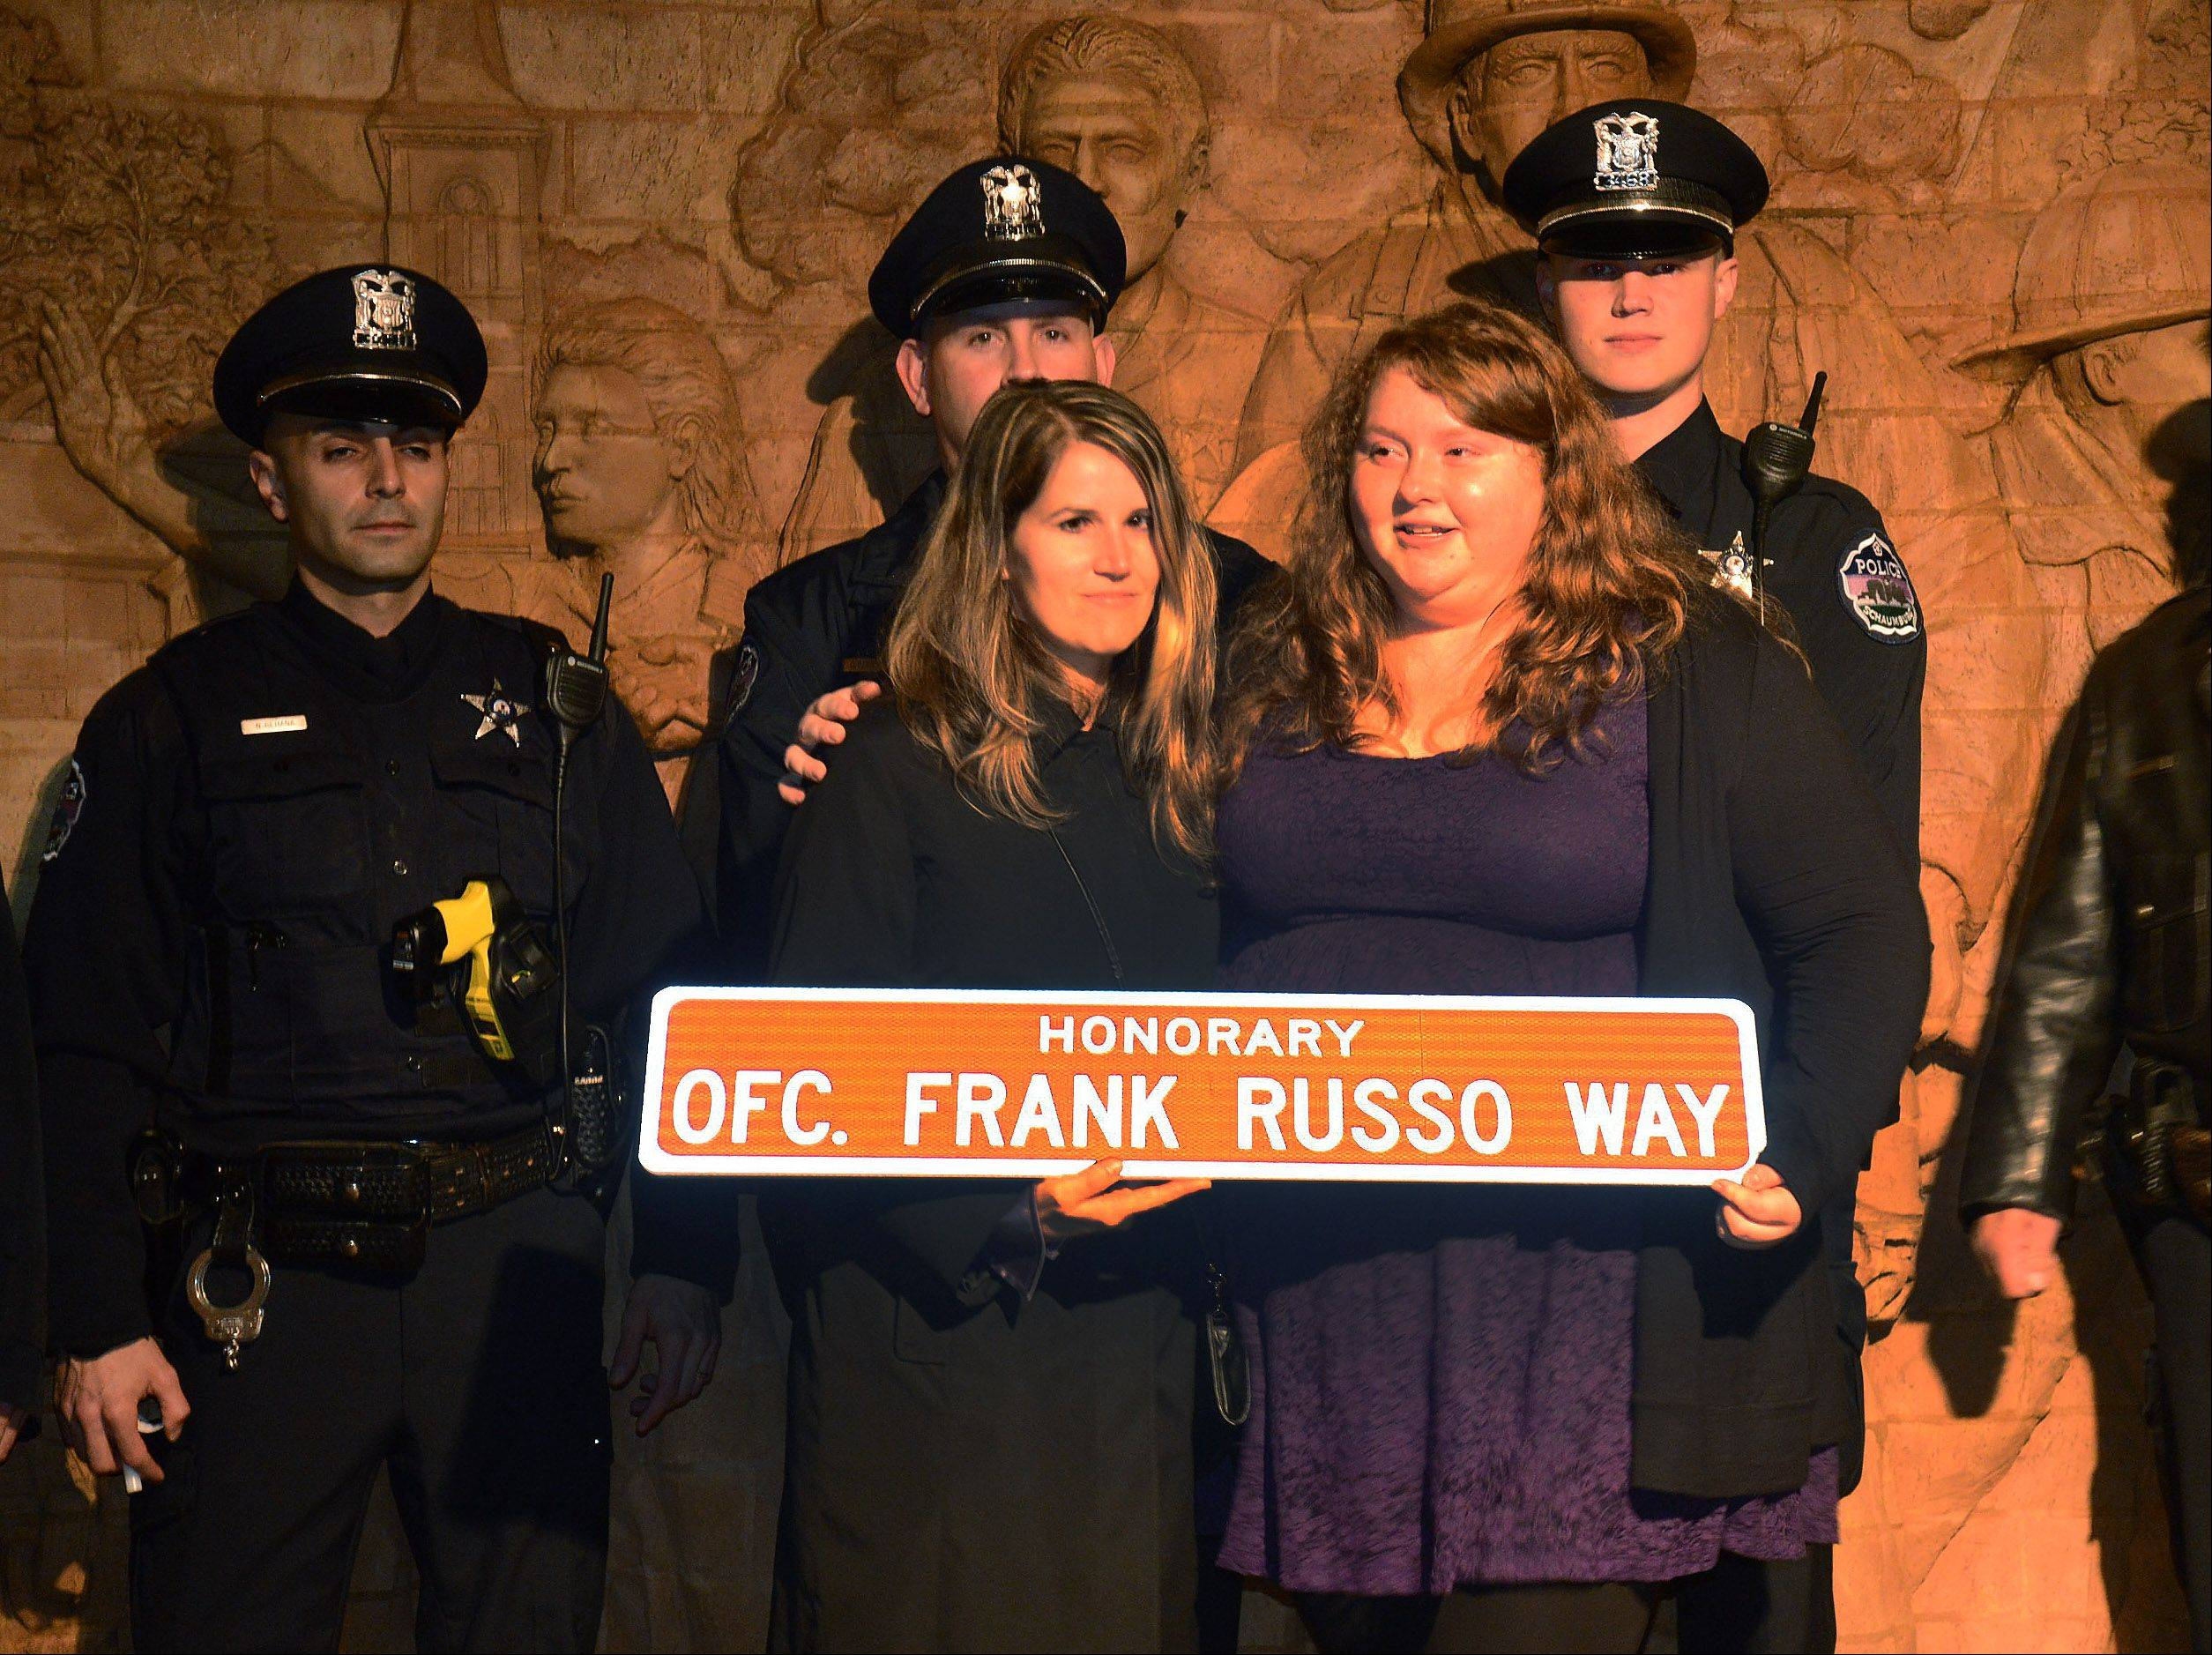 Jenny Russo, widow of Frank Russo, left, and Teresa Russo, his daughter, hold the honorary street sign presented to the Russo family during a special ceremony outside the Schaumburg police station on Friday night.